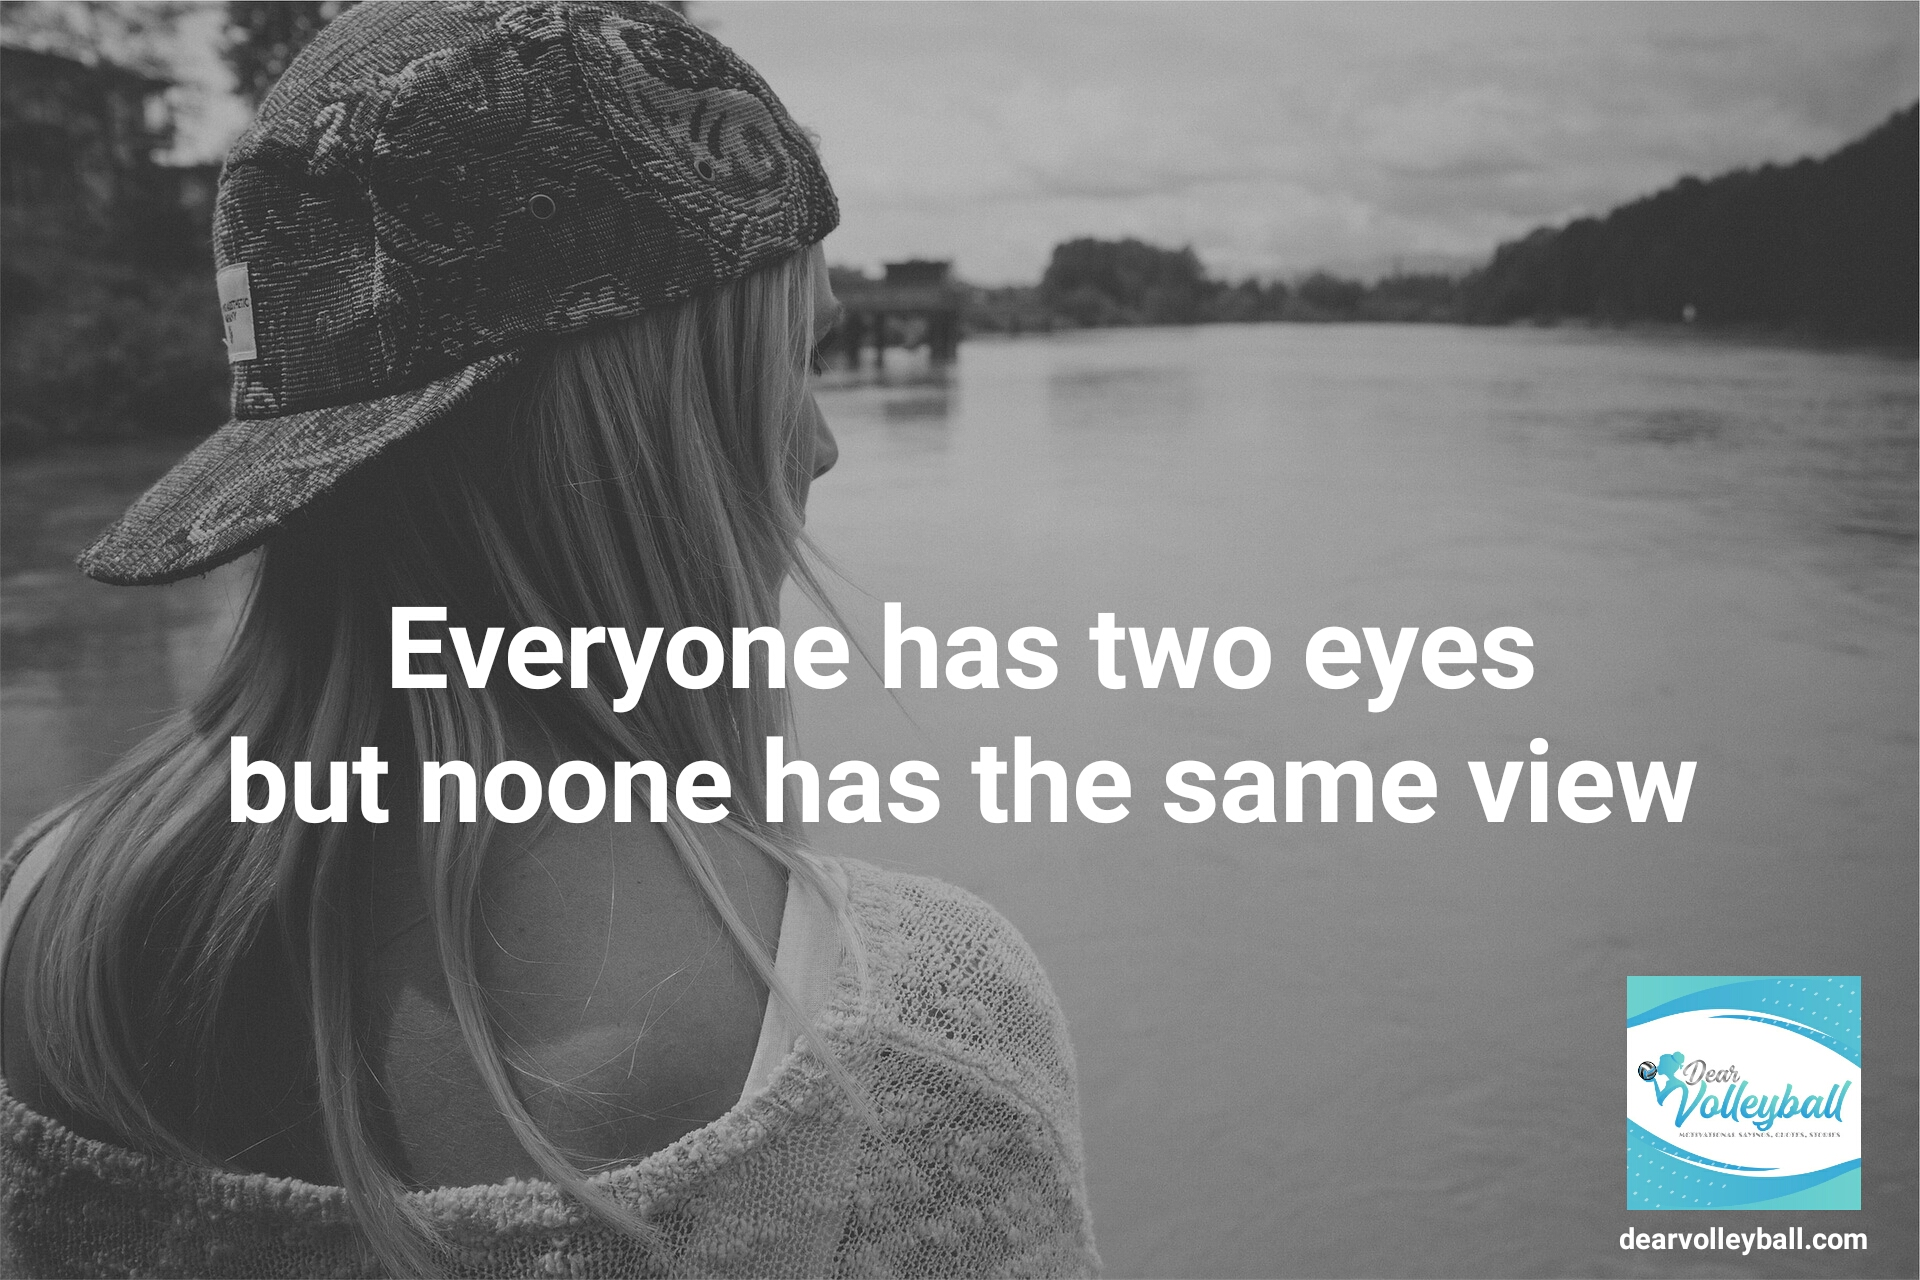 Everyone has two eyes but noone has the same view. Inspirational volleyball quotes and sayings on Dear Volleyball.com